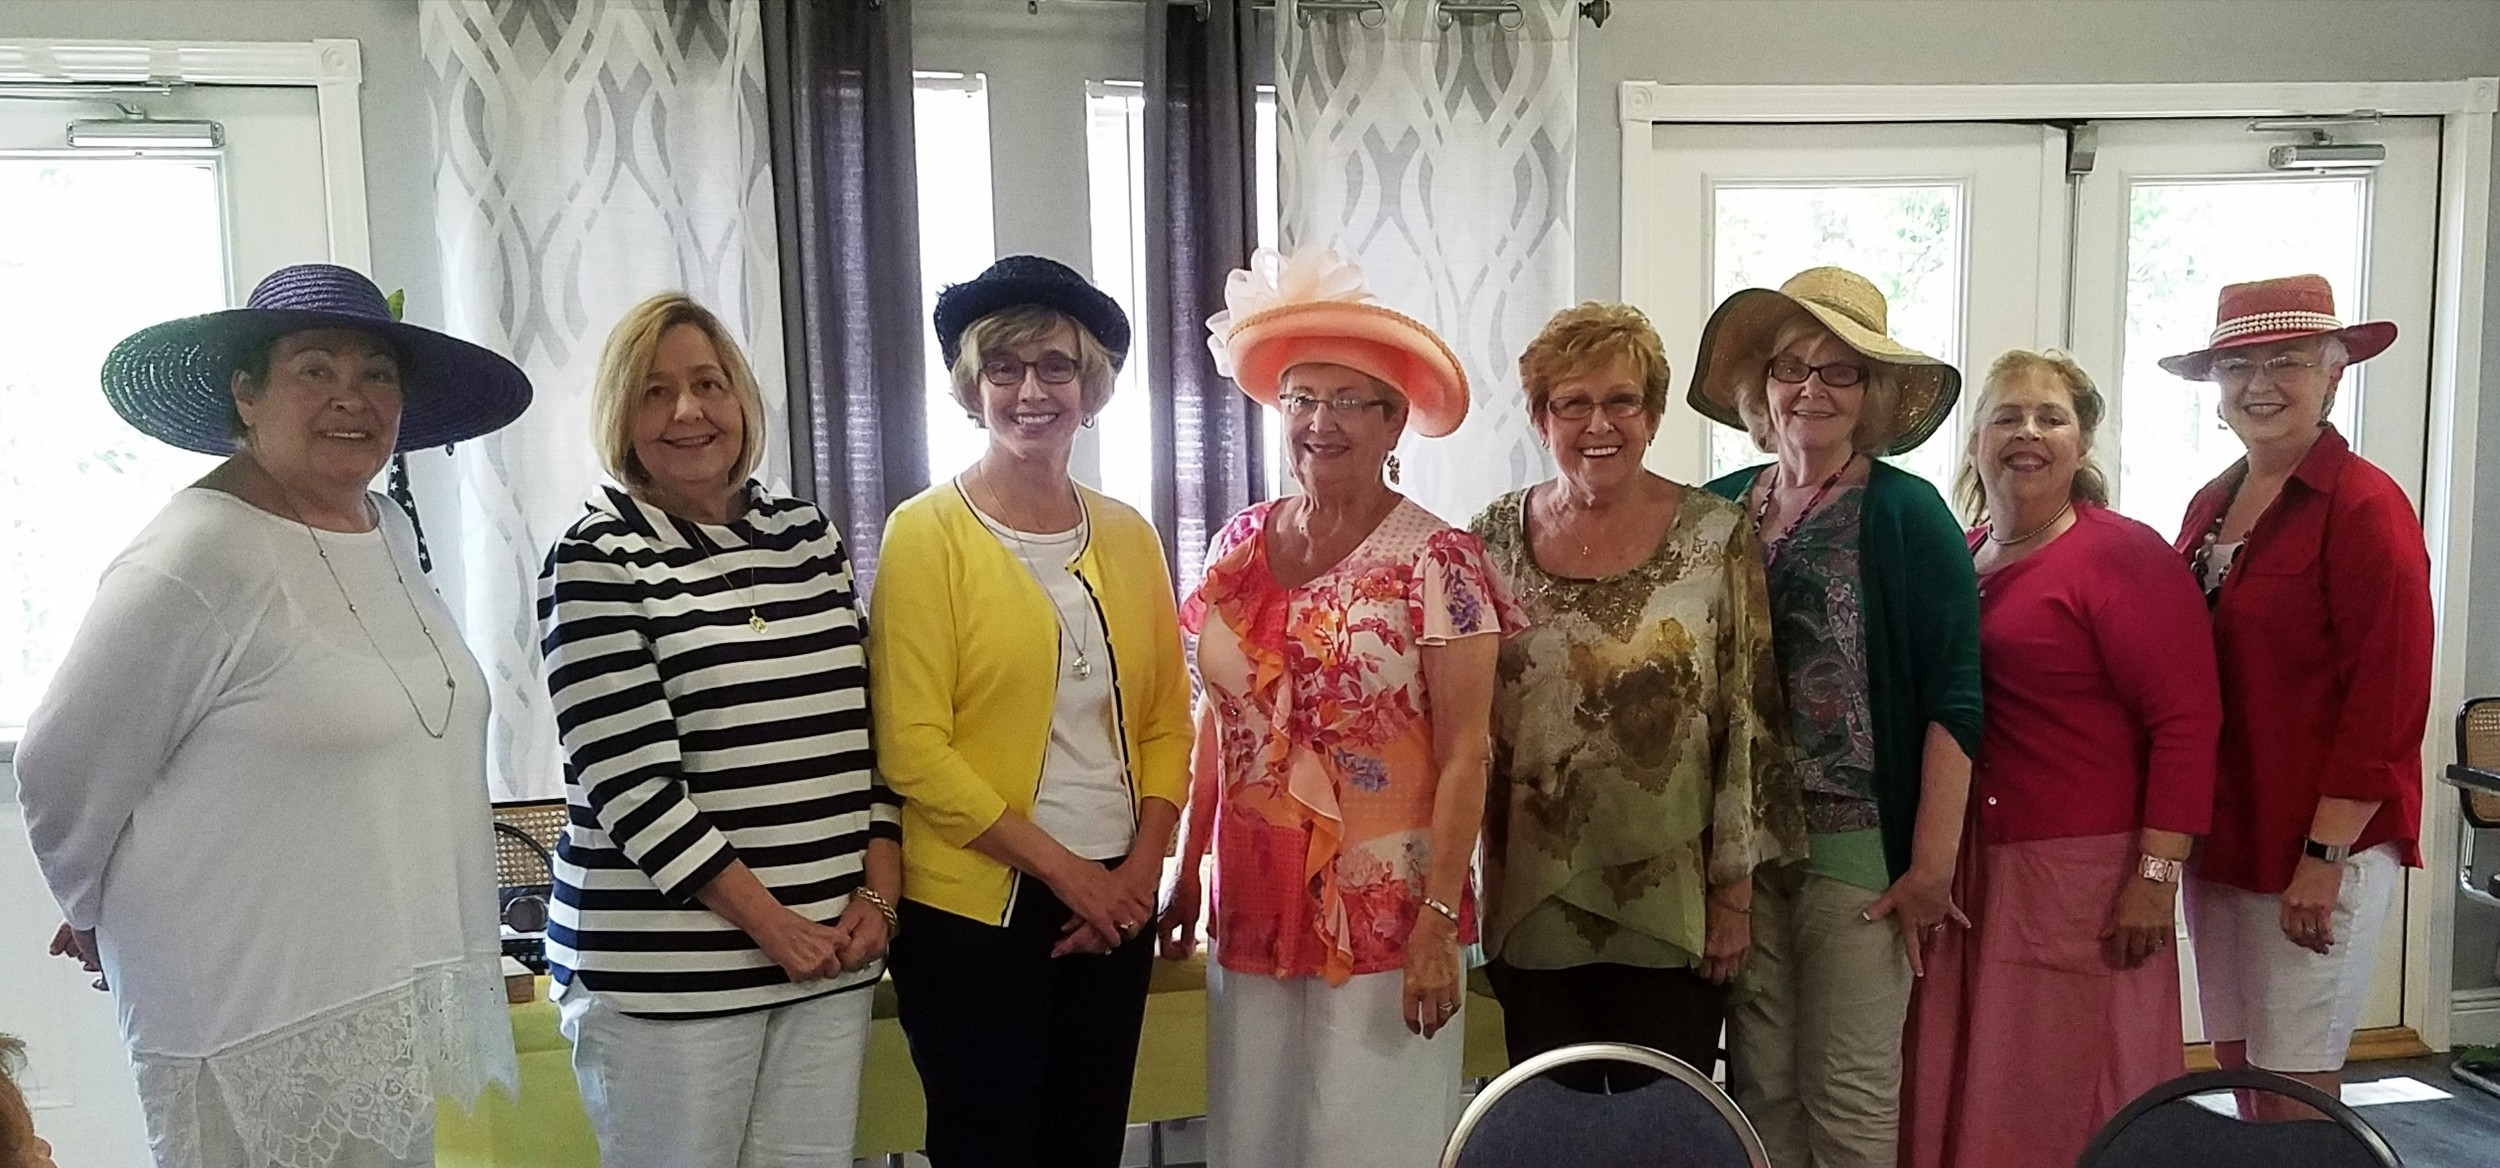 From right to left: Sylvia Womack, Chris Anglin, Deborah Johnson, Kathleen Roberts, Barbara McCamish, Verna Coggins, Loretta Ballow, Linda Lambert, Sheila Morgan.